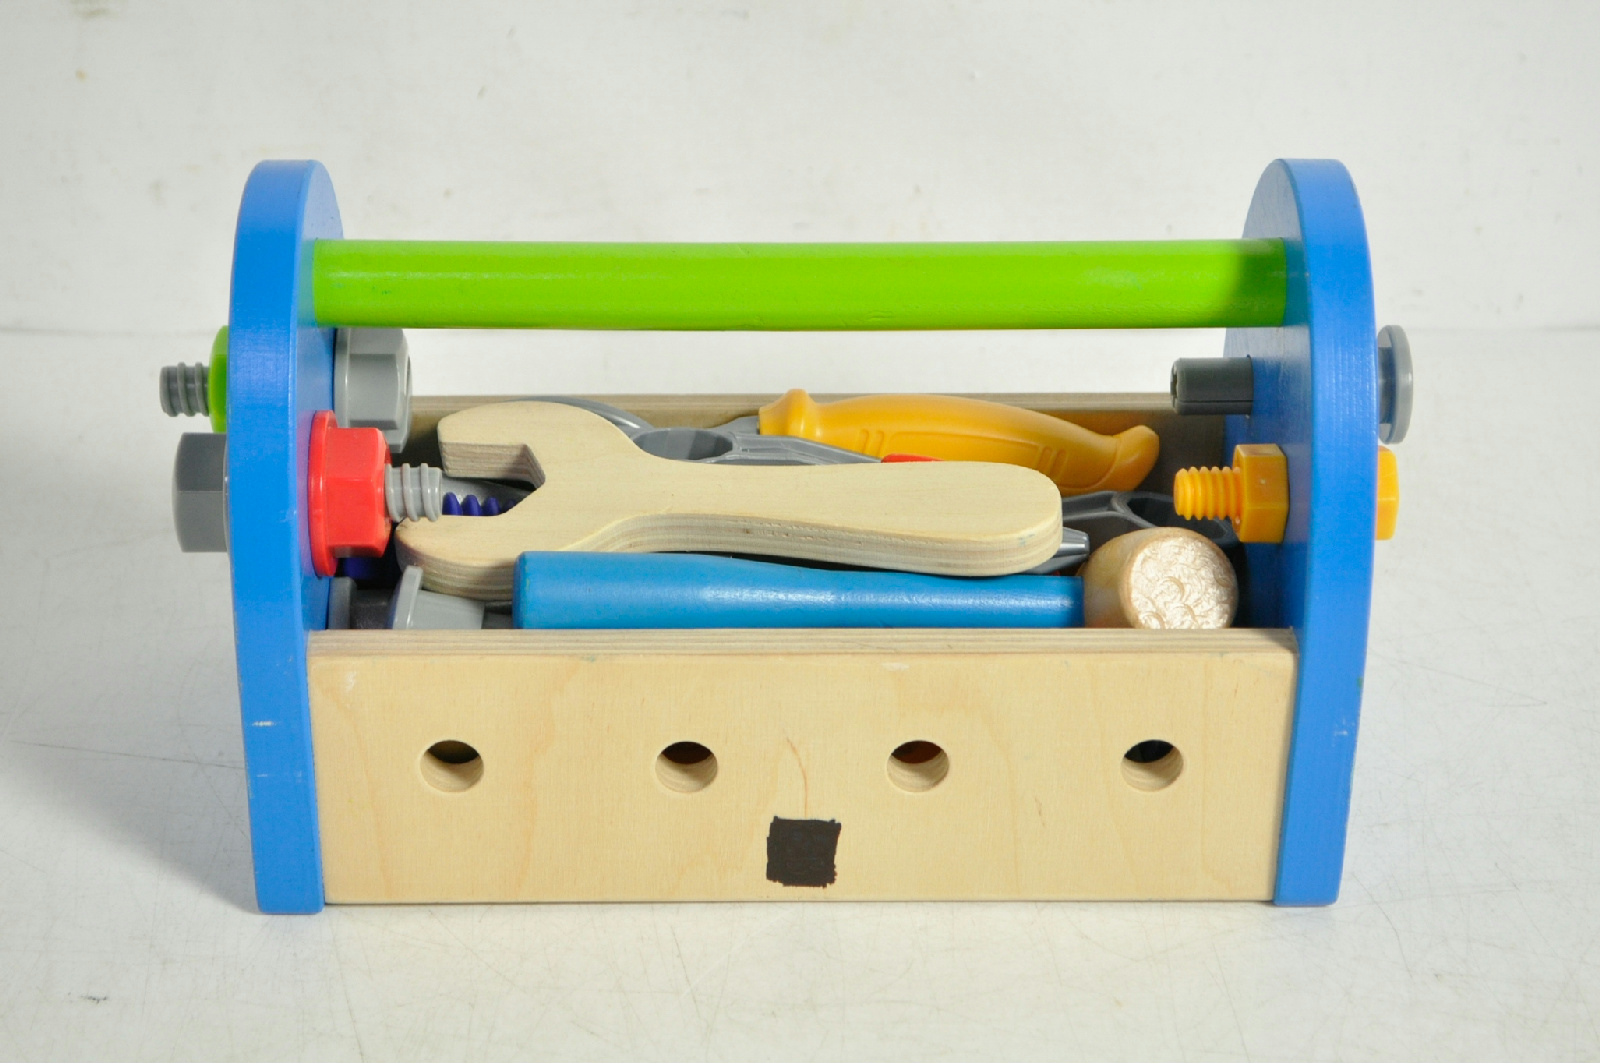 Plastic Toy Tools : Toy wooden tool box set for kids plastic and wood tools ebay